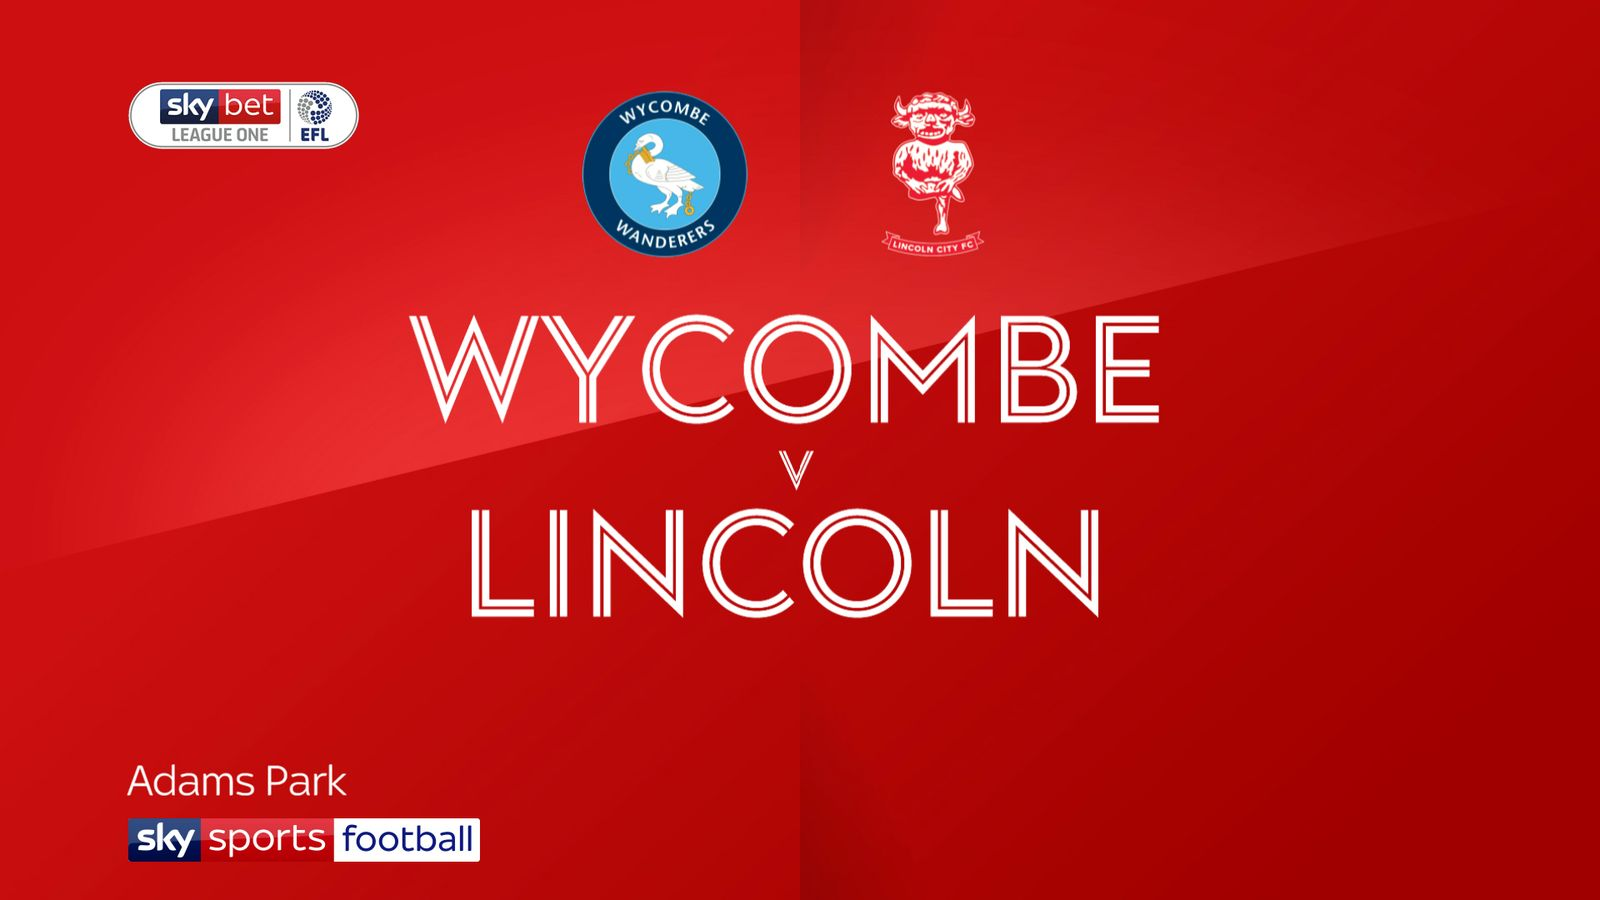 Wycombe 3 - 1 Lincoln - Match Report & Highlights